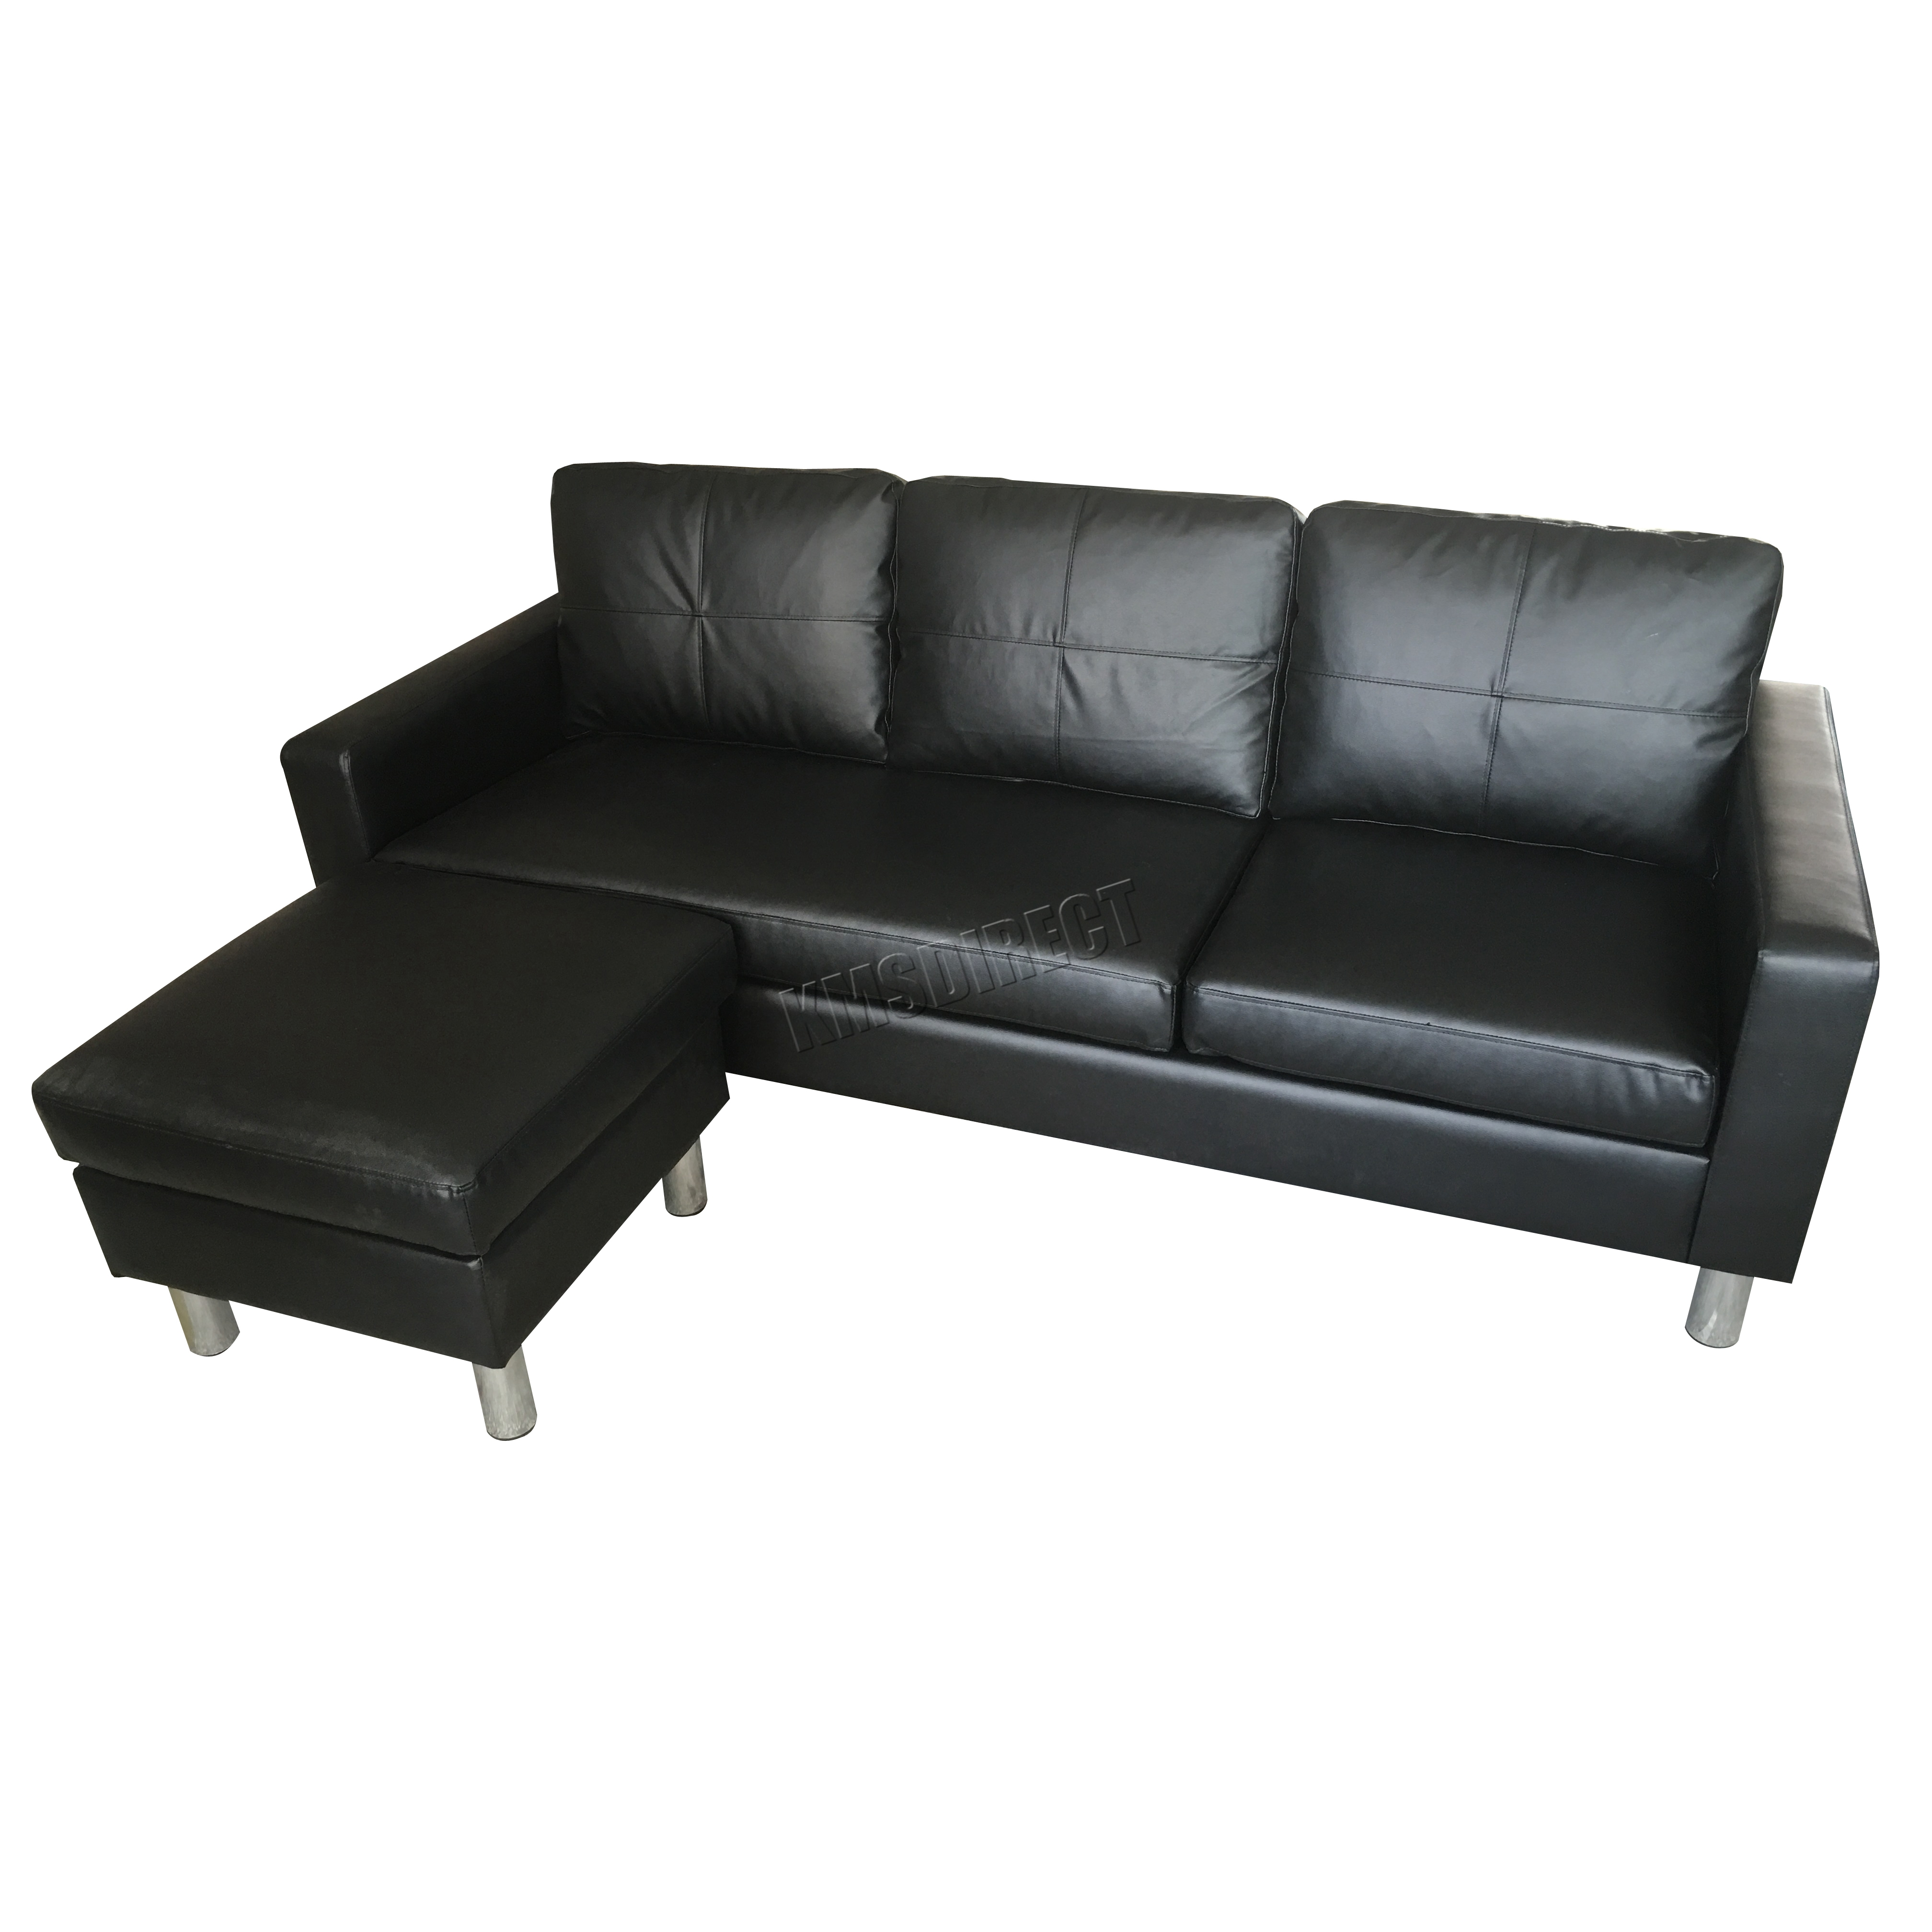 Foxhunter modern pu l shaped corner 3 seater sofa with for Chaise longue corner sofa